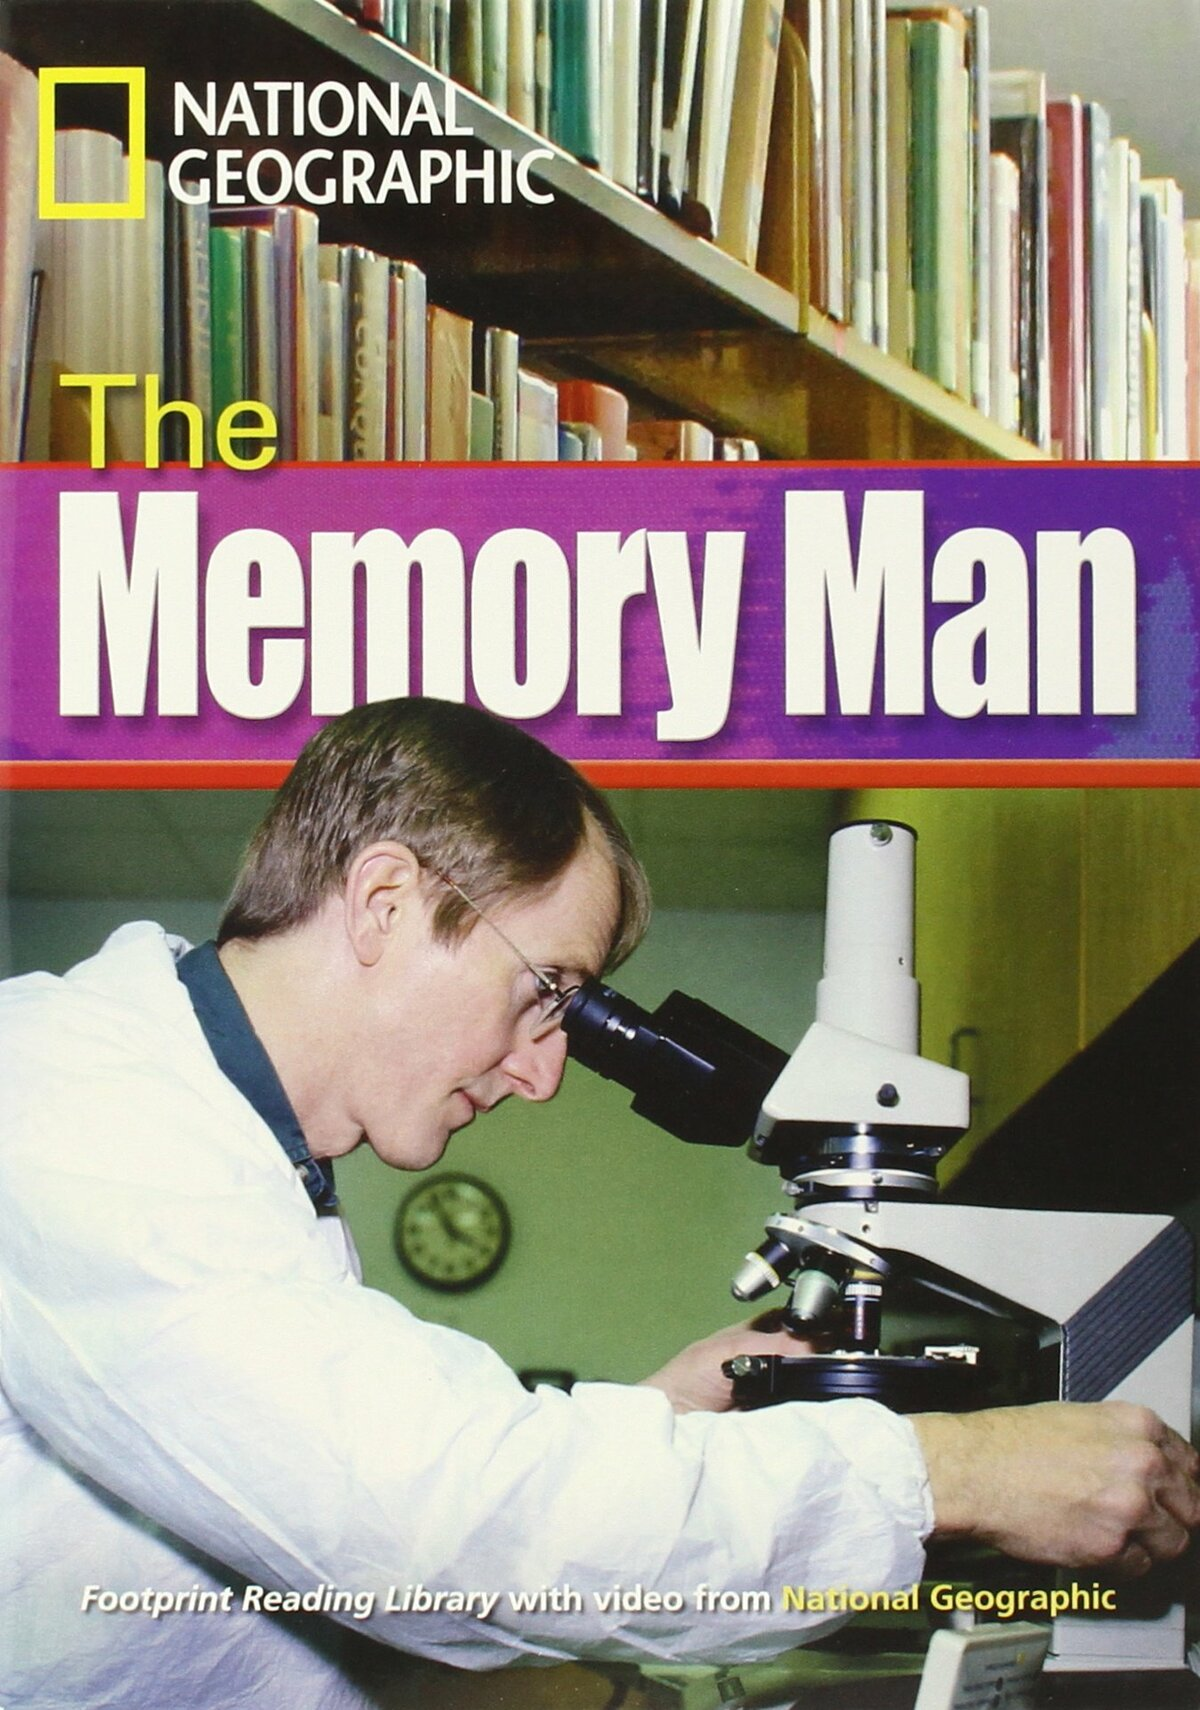 Footprint Reading Library 1000 Headwords: The Memory Man (A2) - https://ugra.ru/1000/footprint-reading-library-1000-headwords-the-memory-man-a2.html